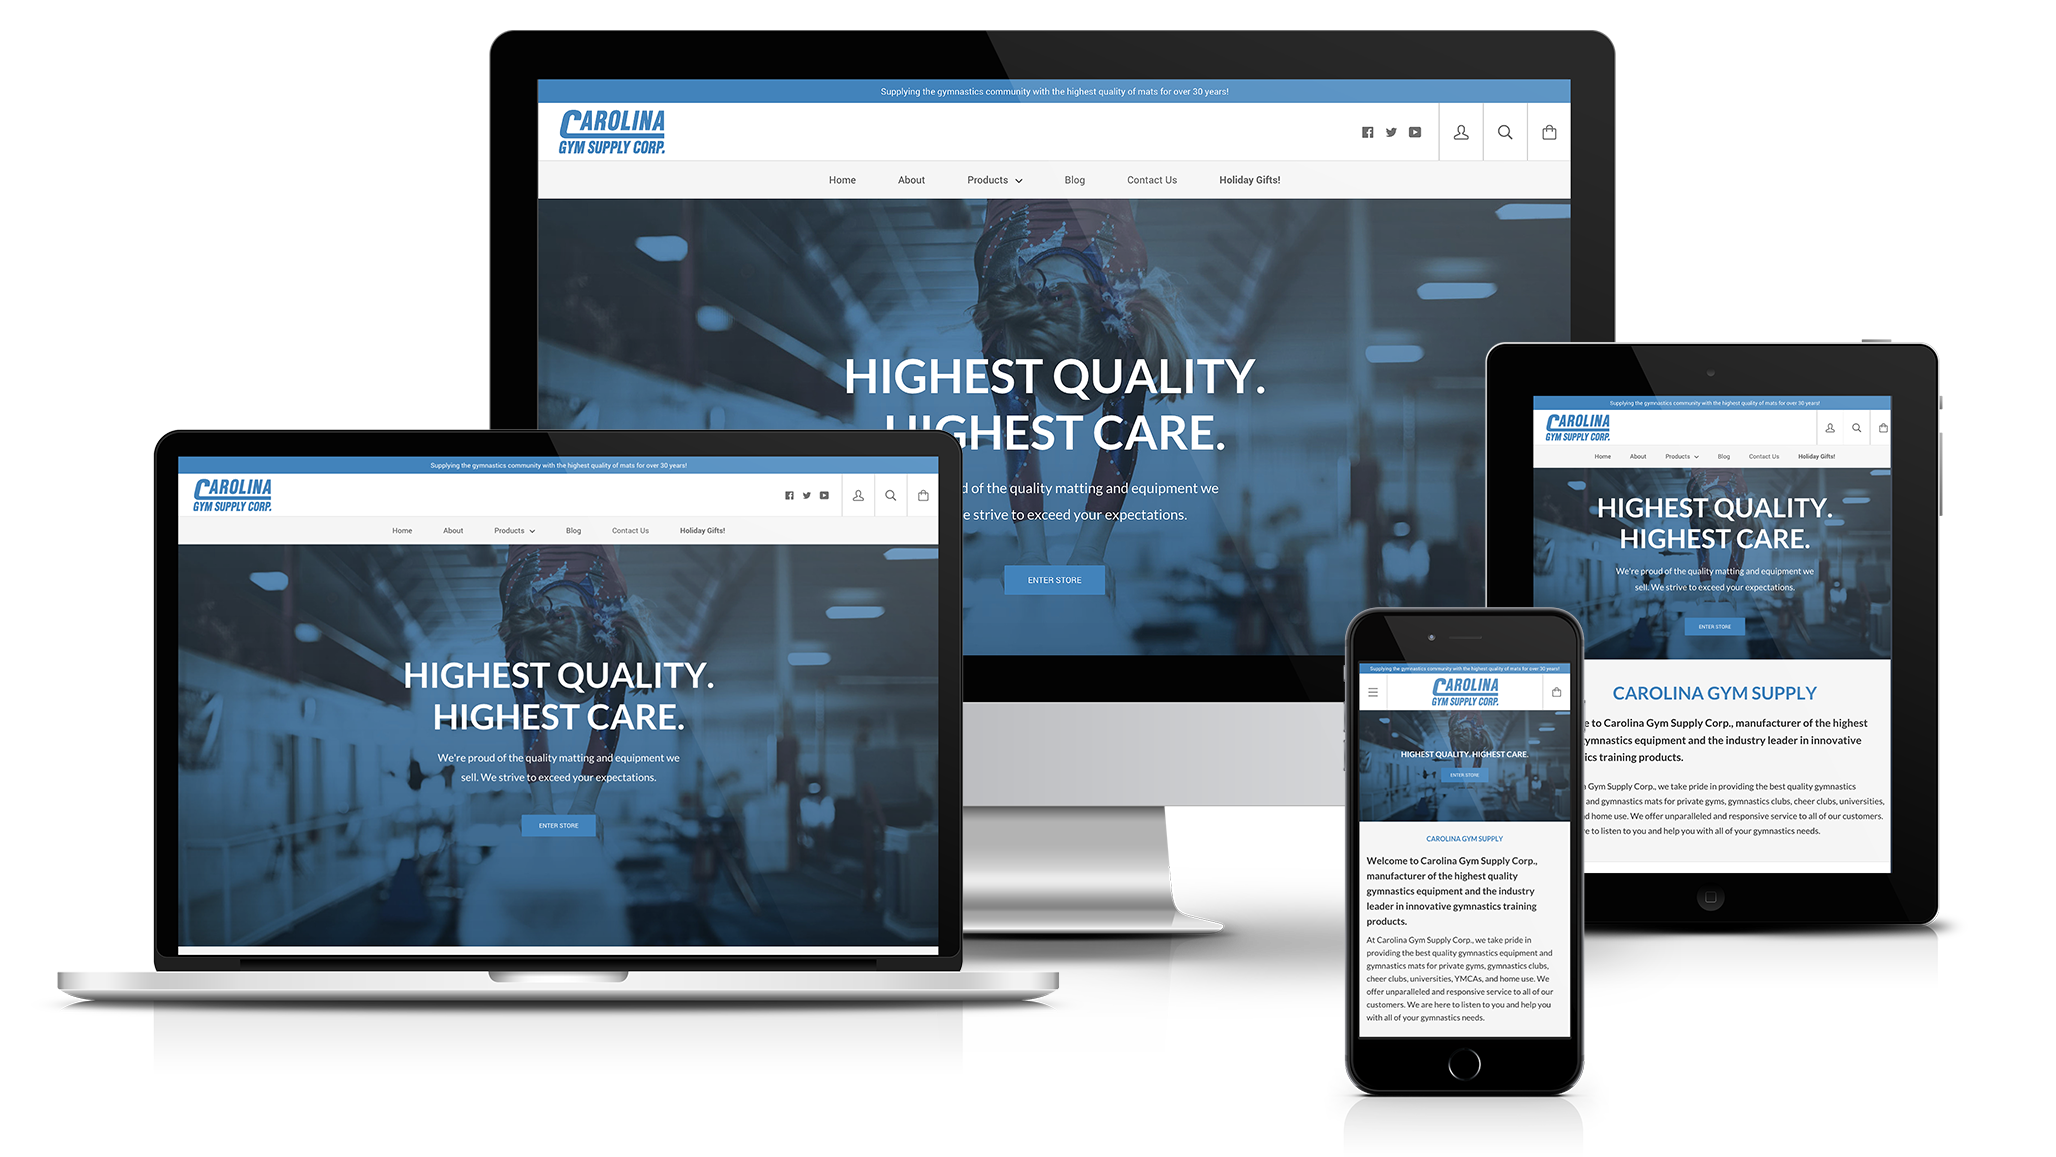 Carolina Gym Web Design